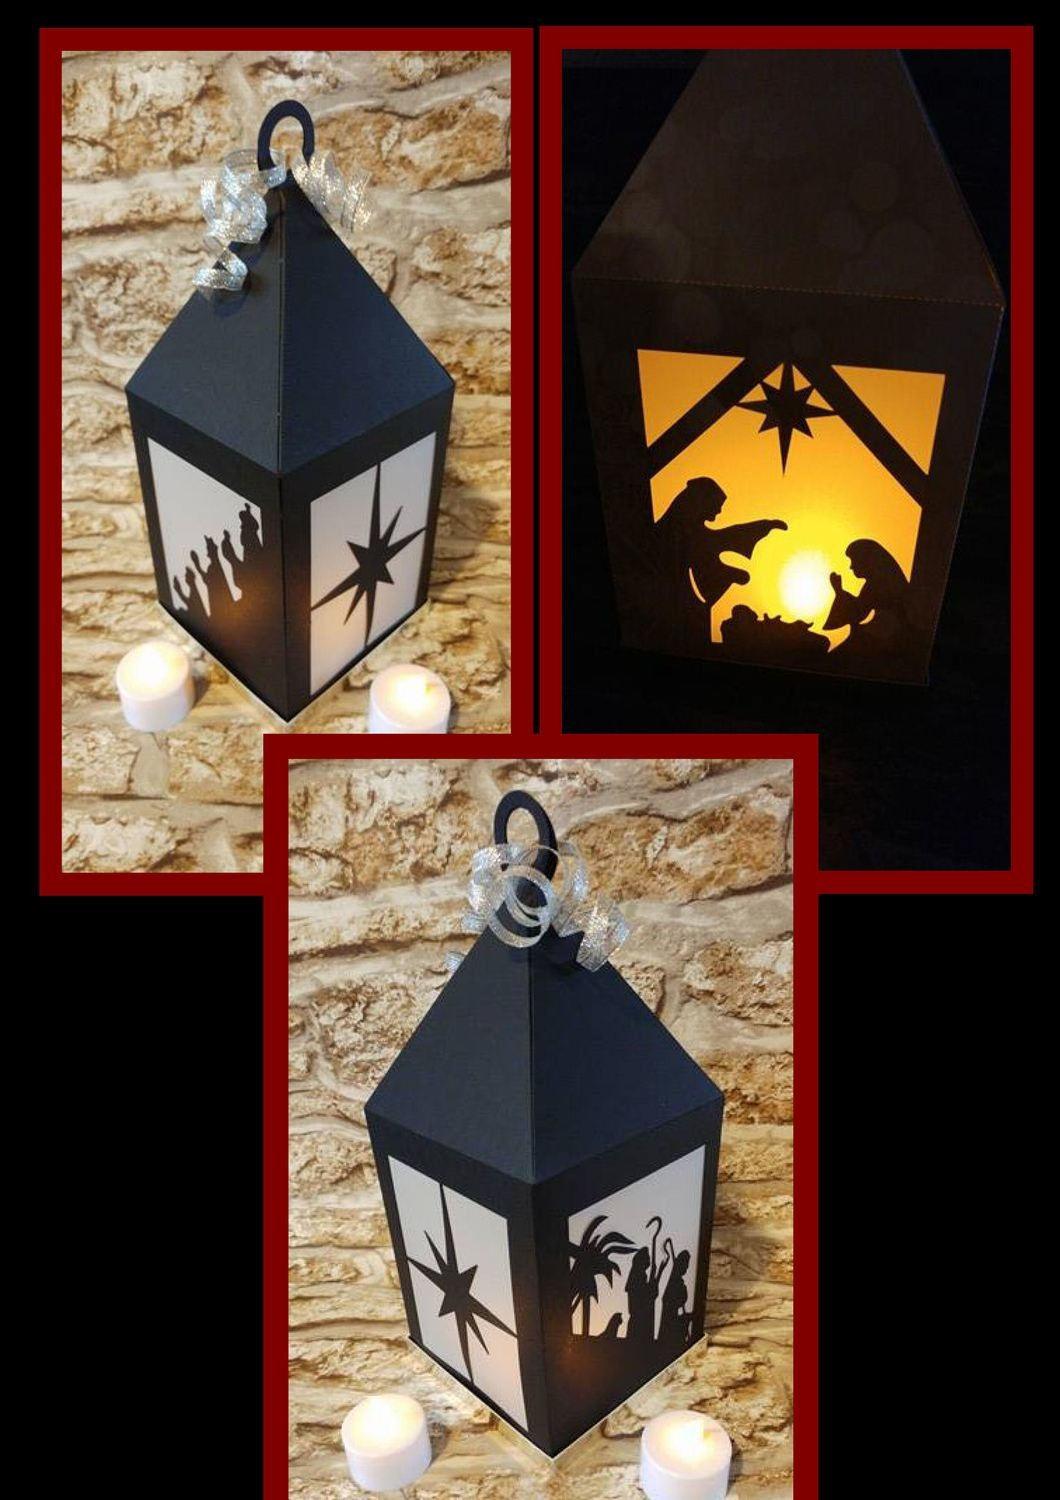 Stunning Christmas Nativity Lantern Luminaire, Lamp studio format